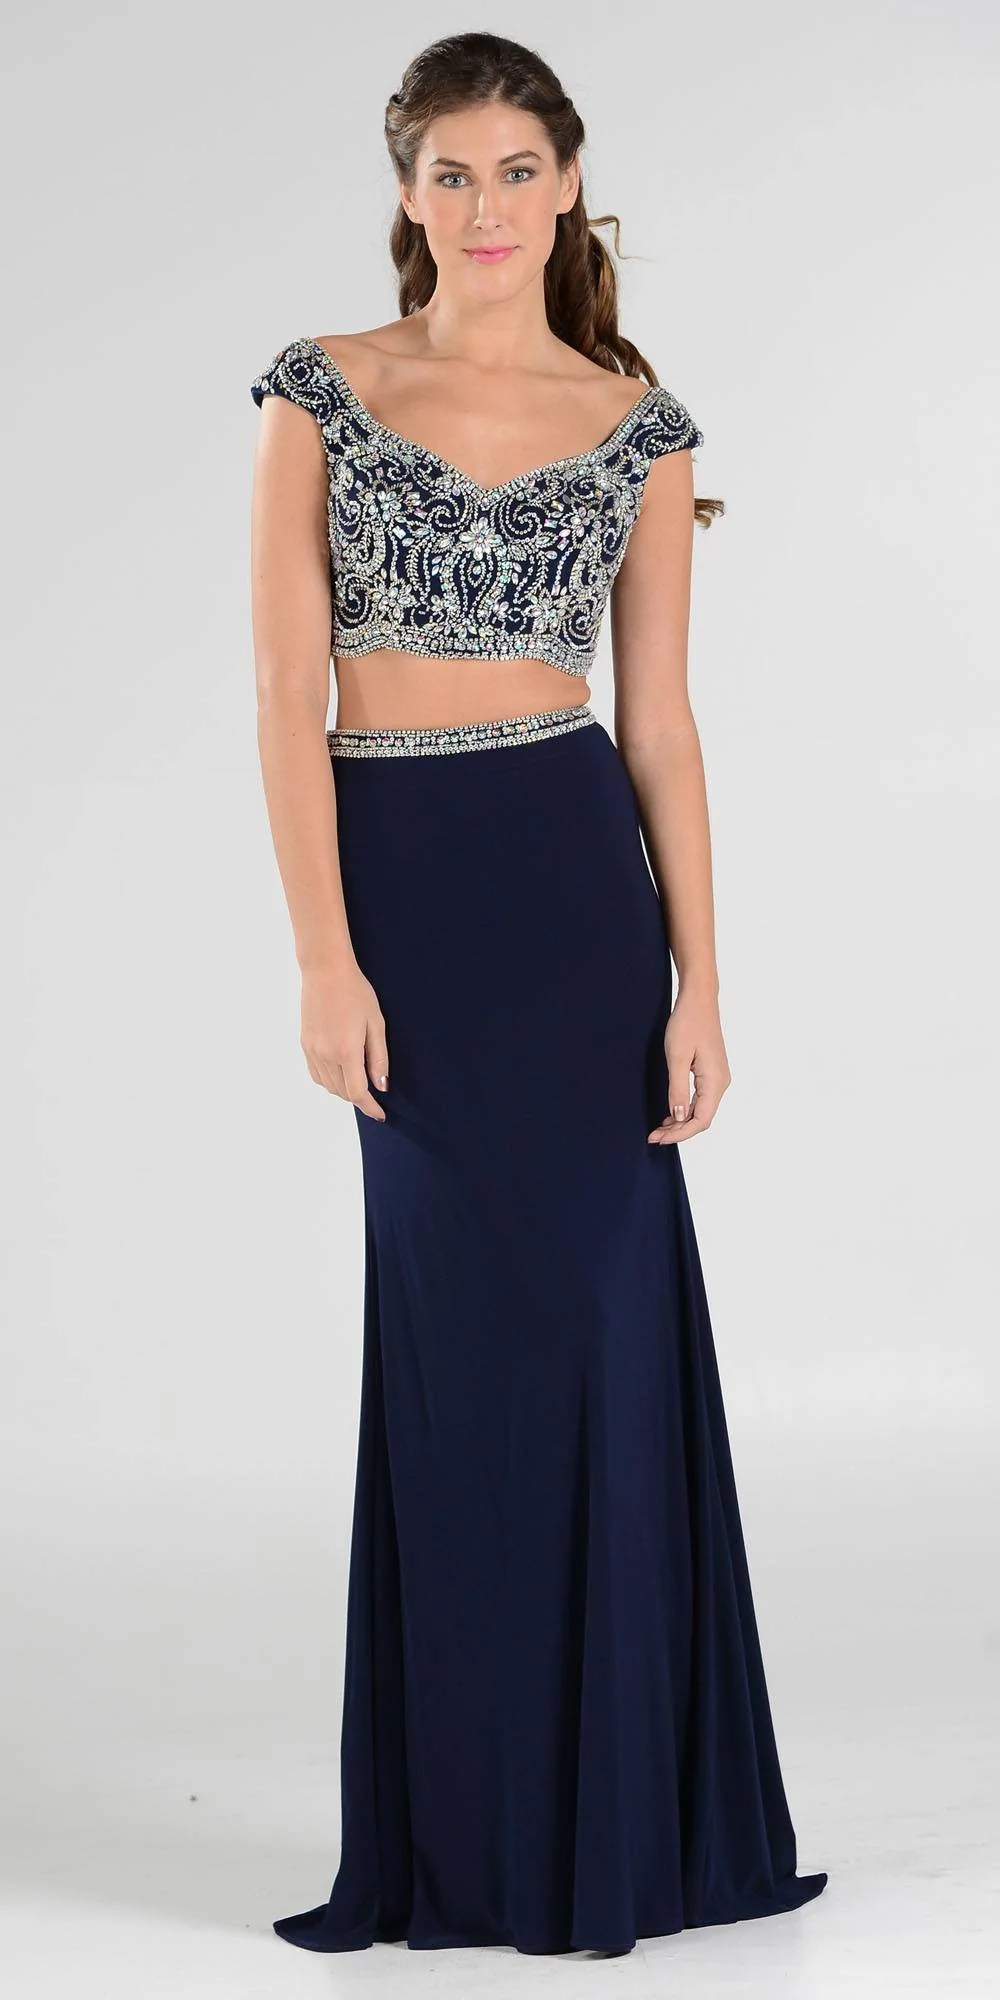 Long Sleeve Two Piece Prom Dresses